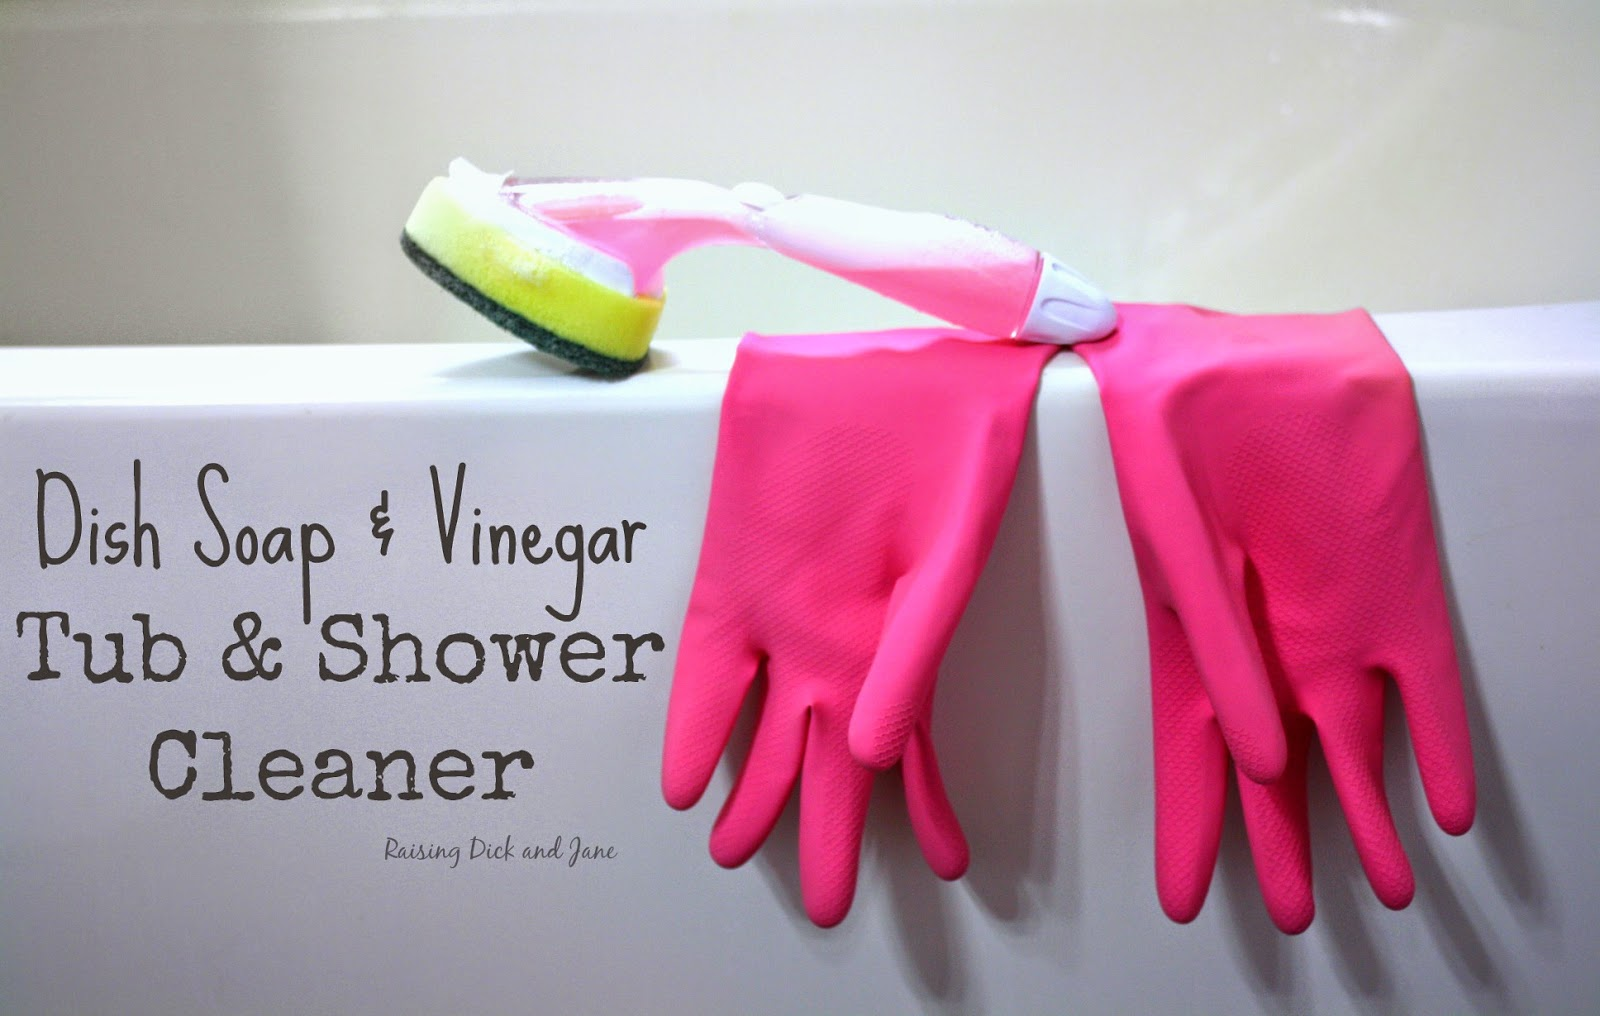 5 NEW uses for dish soap #shop  #Palmolive25Ways  #cbias